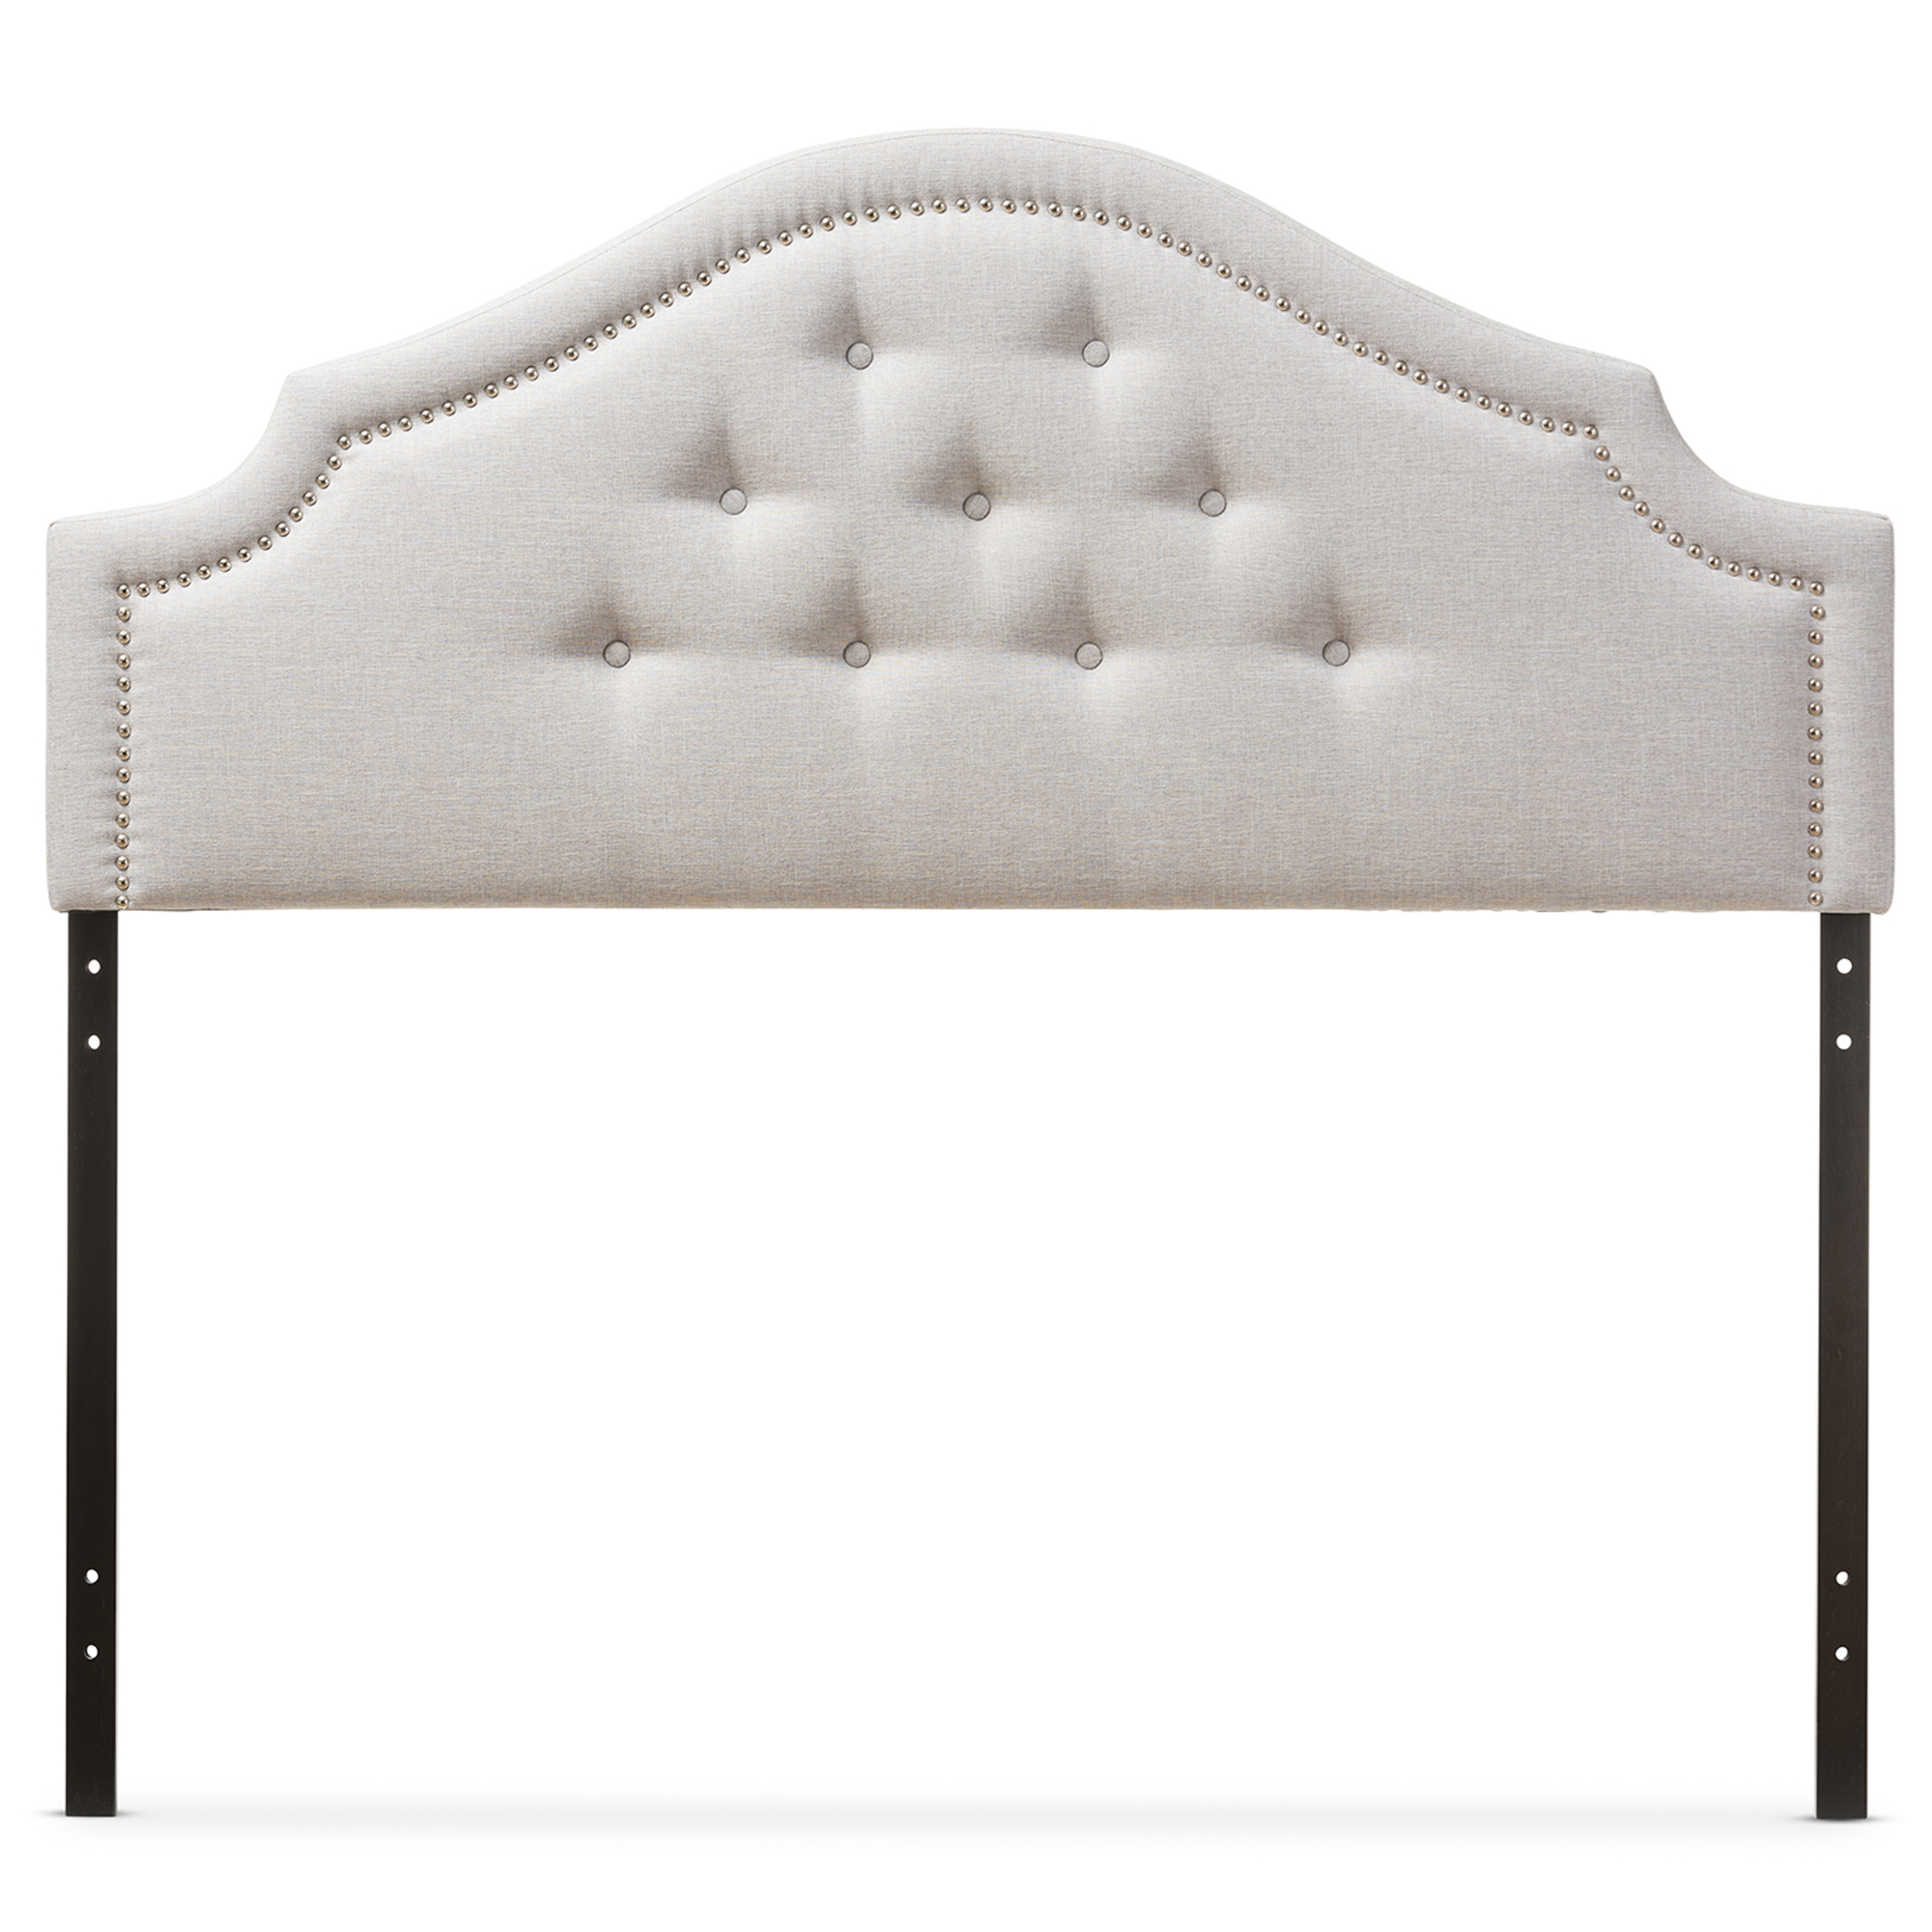 Baxton Studio Cora Modern And Contemporary Greyish Beige Fabric Upholstered  Queen Size Headboard   BBT6564  ...